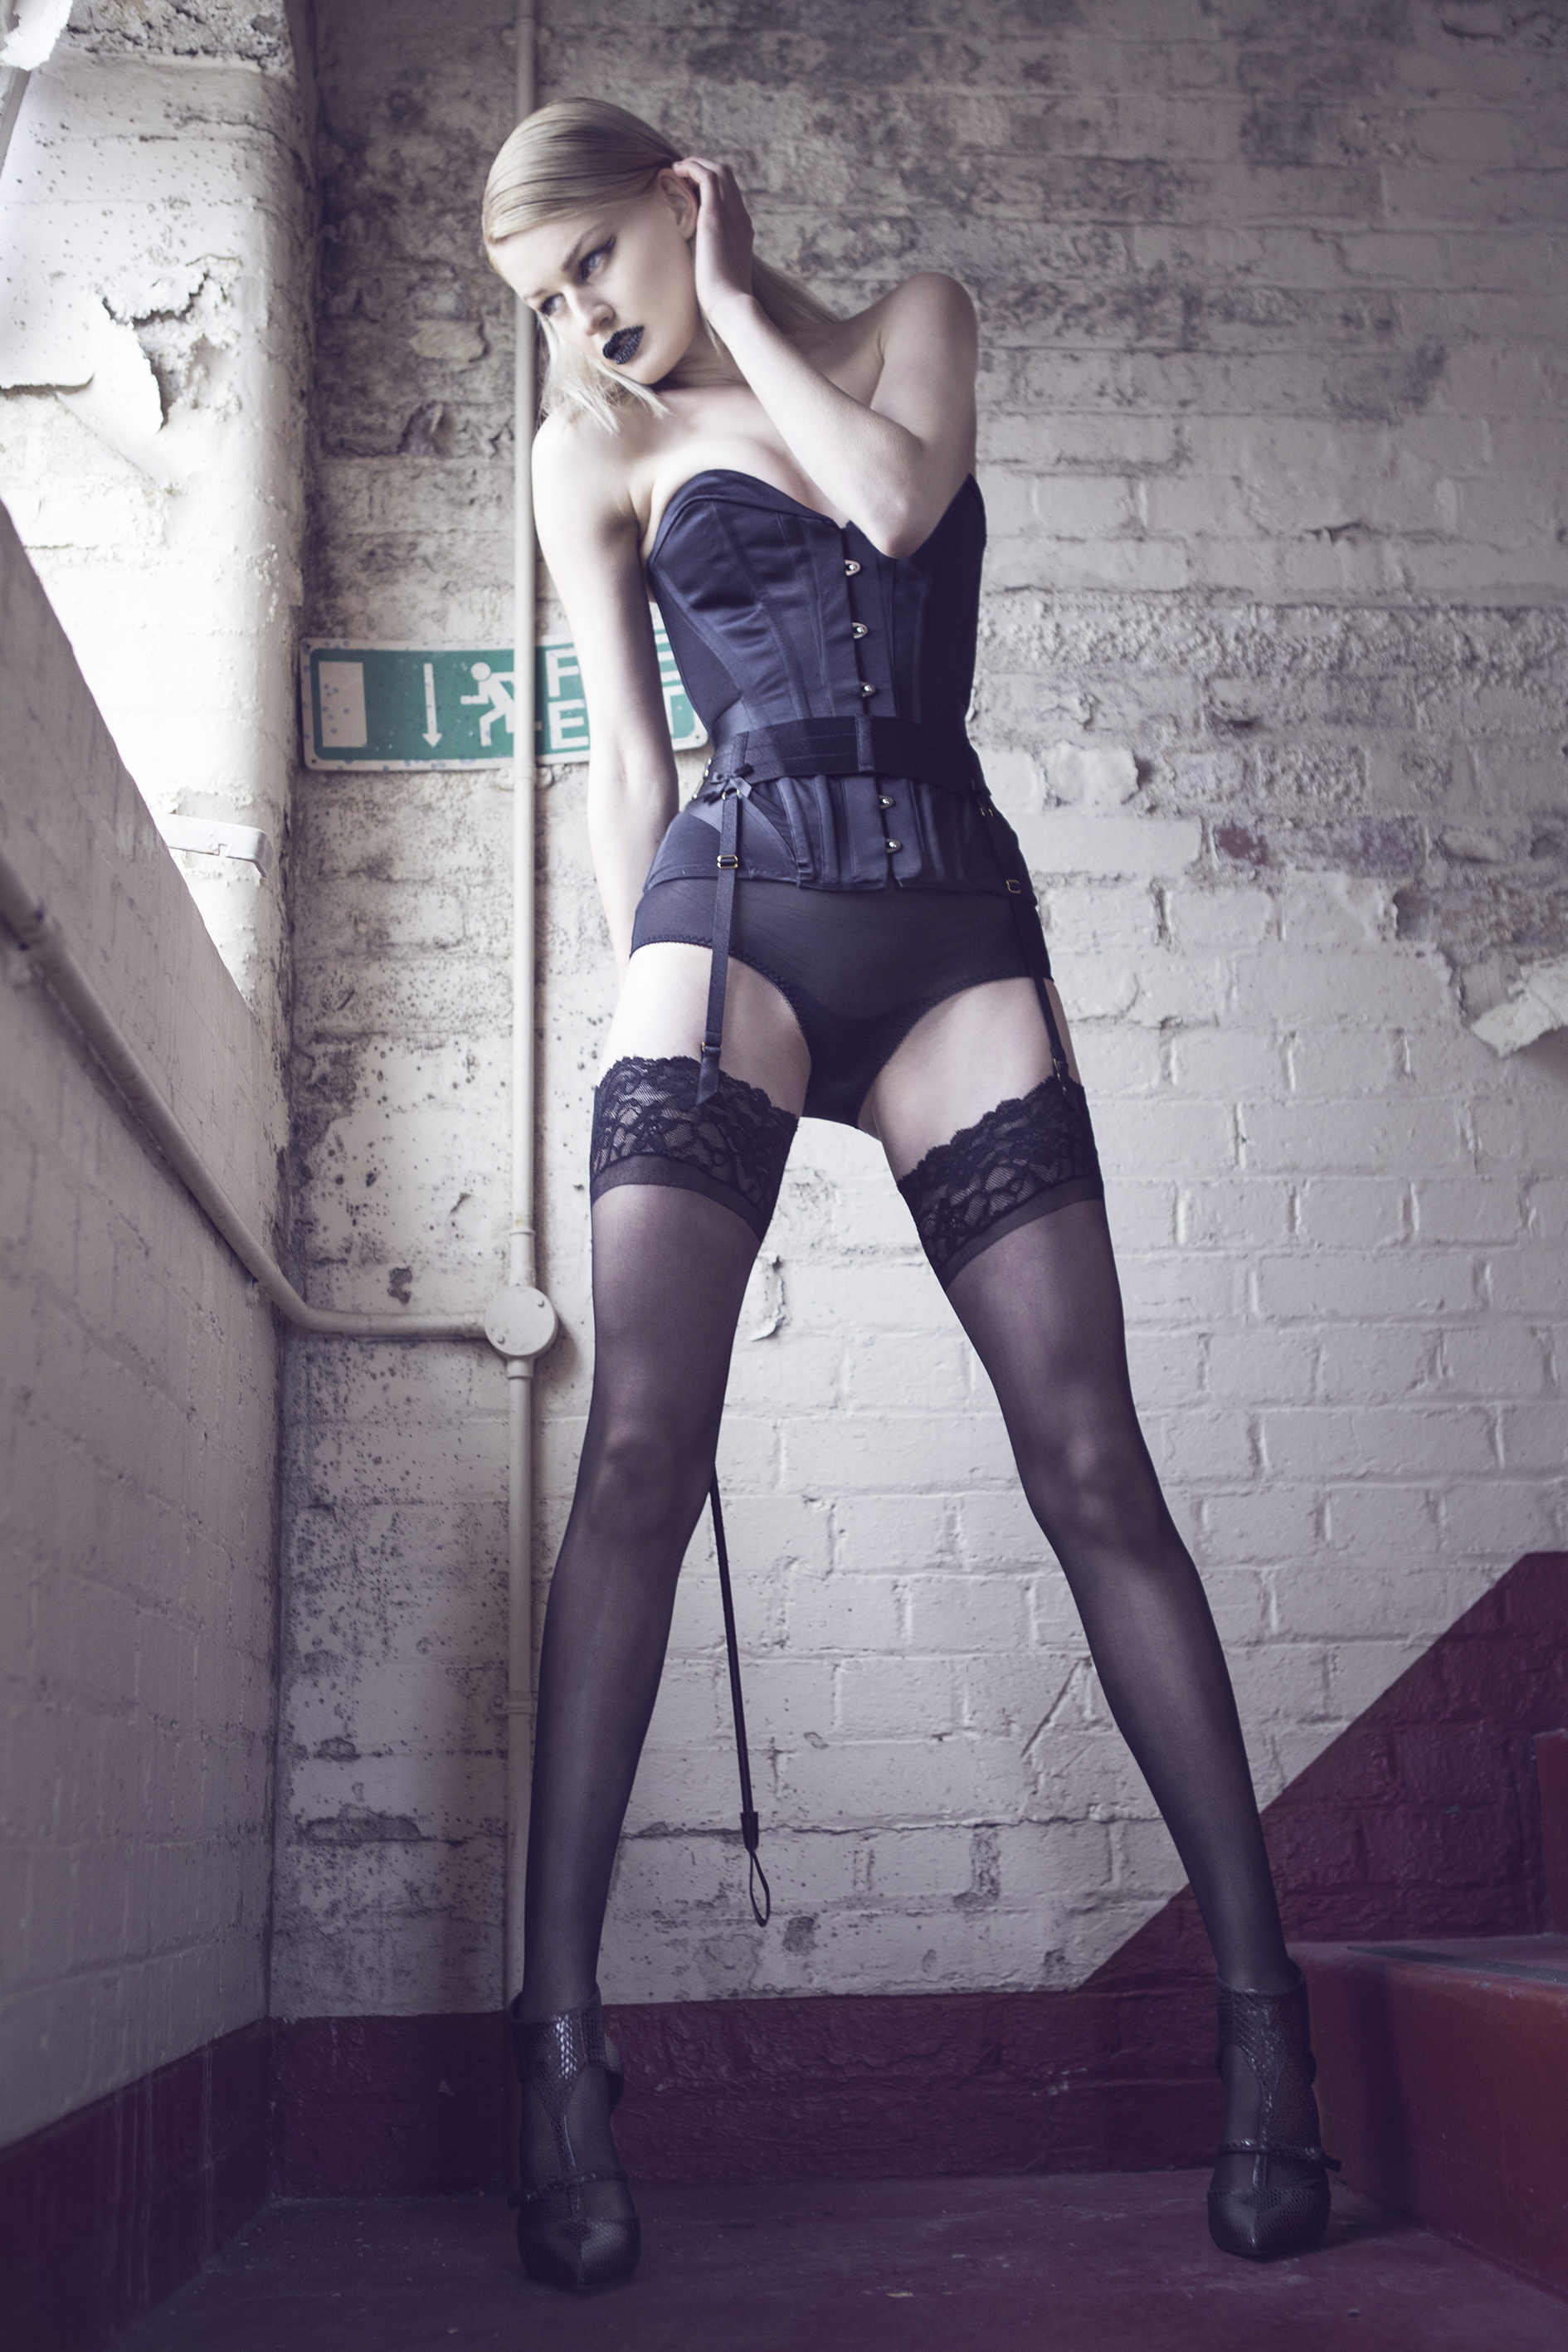 For Suspenders stockings and heels can believe